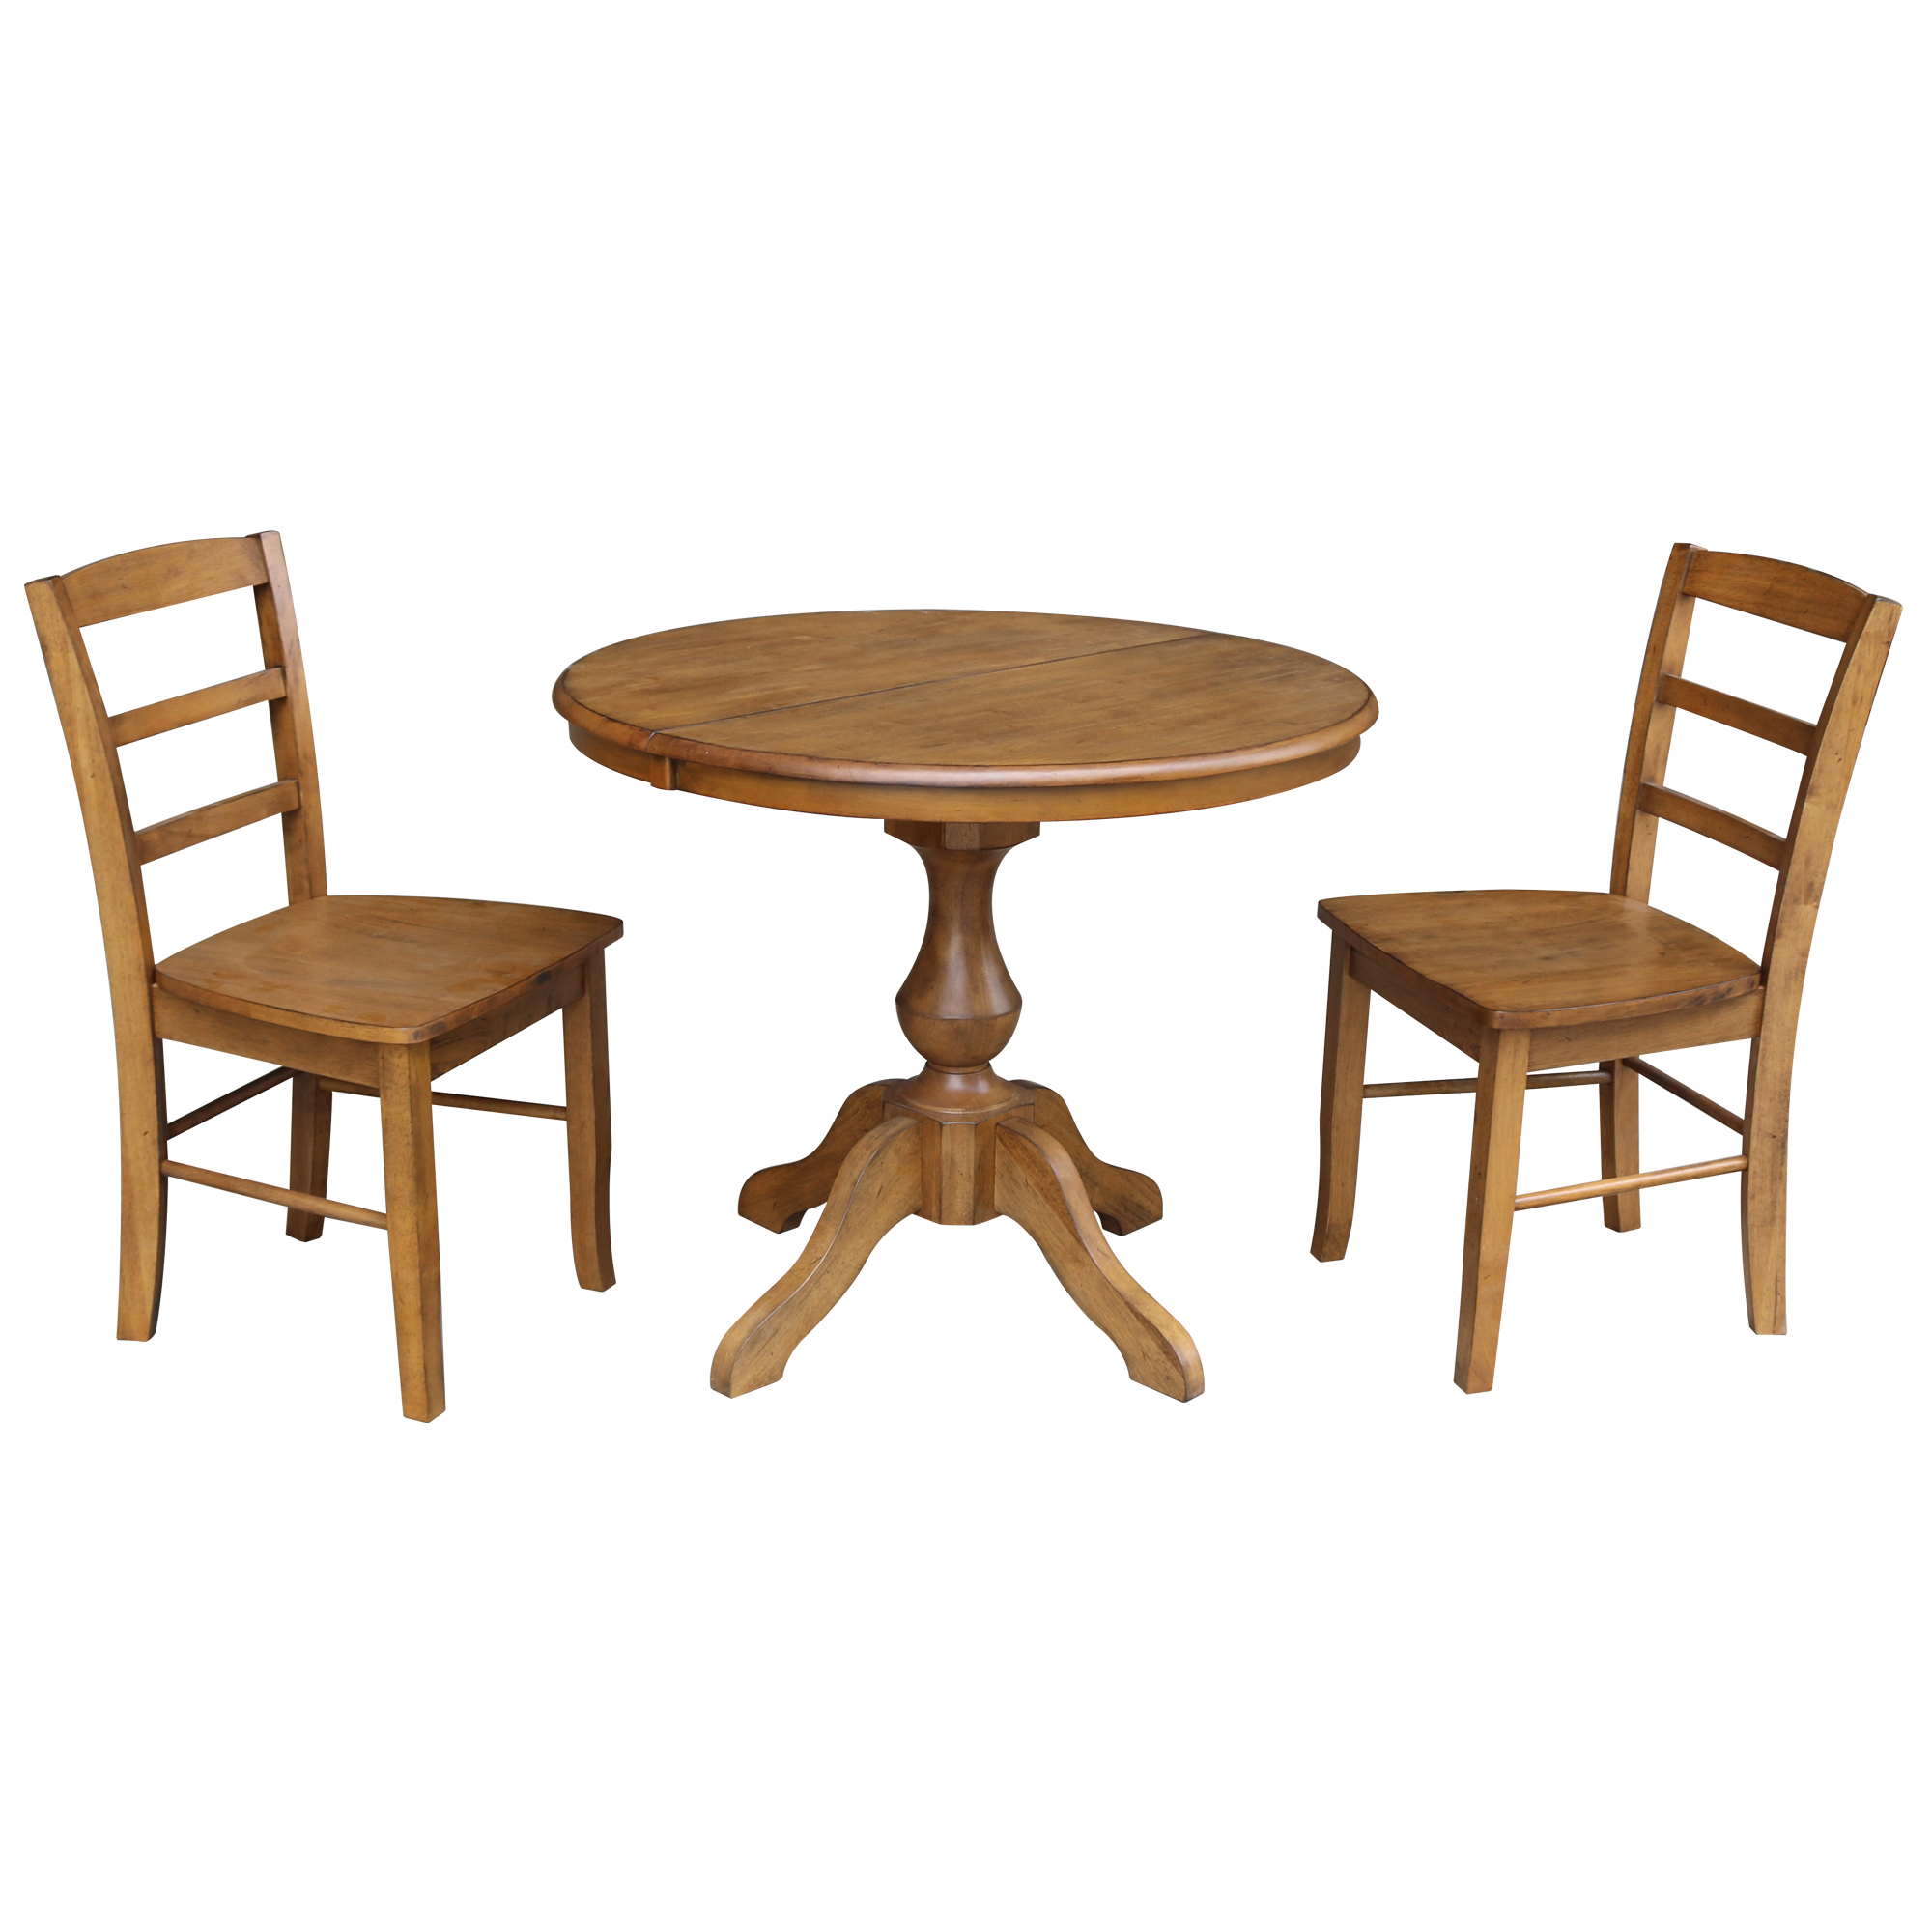 "36"" Round Dining Table with 12"" Leaf and 2 Madrid Chairs - Pecan- 3 Piece Set"